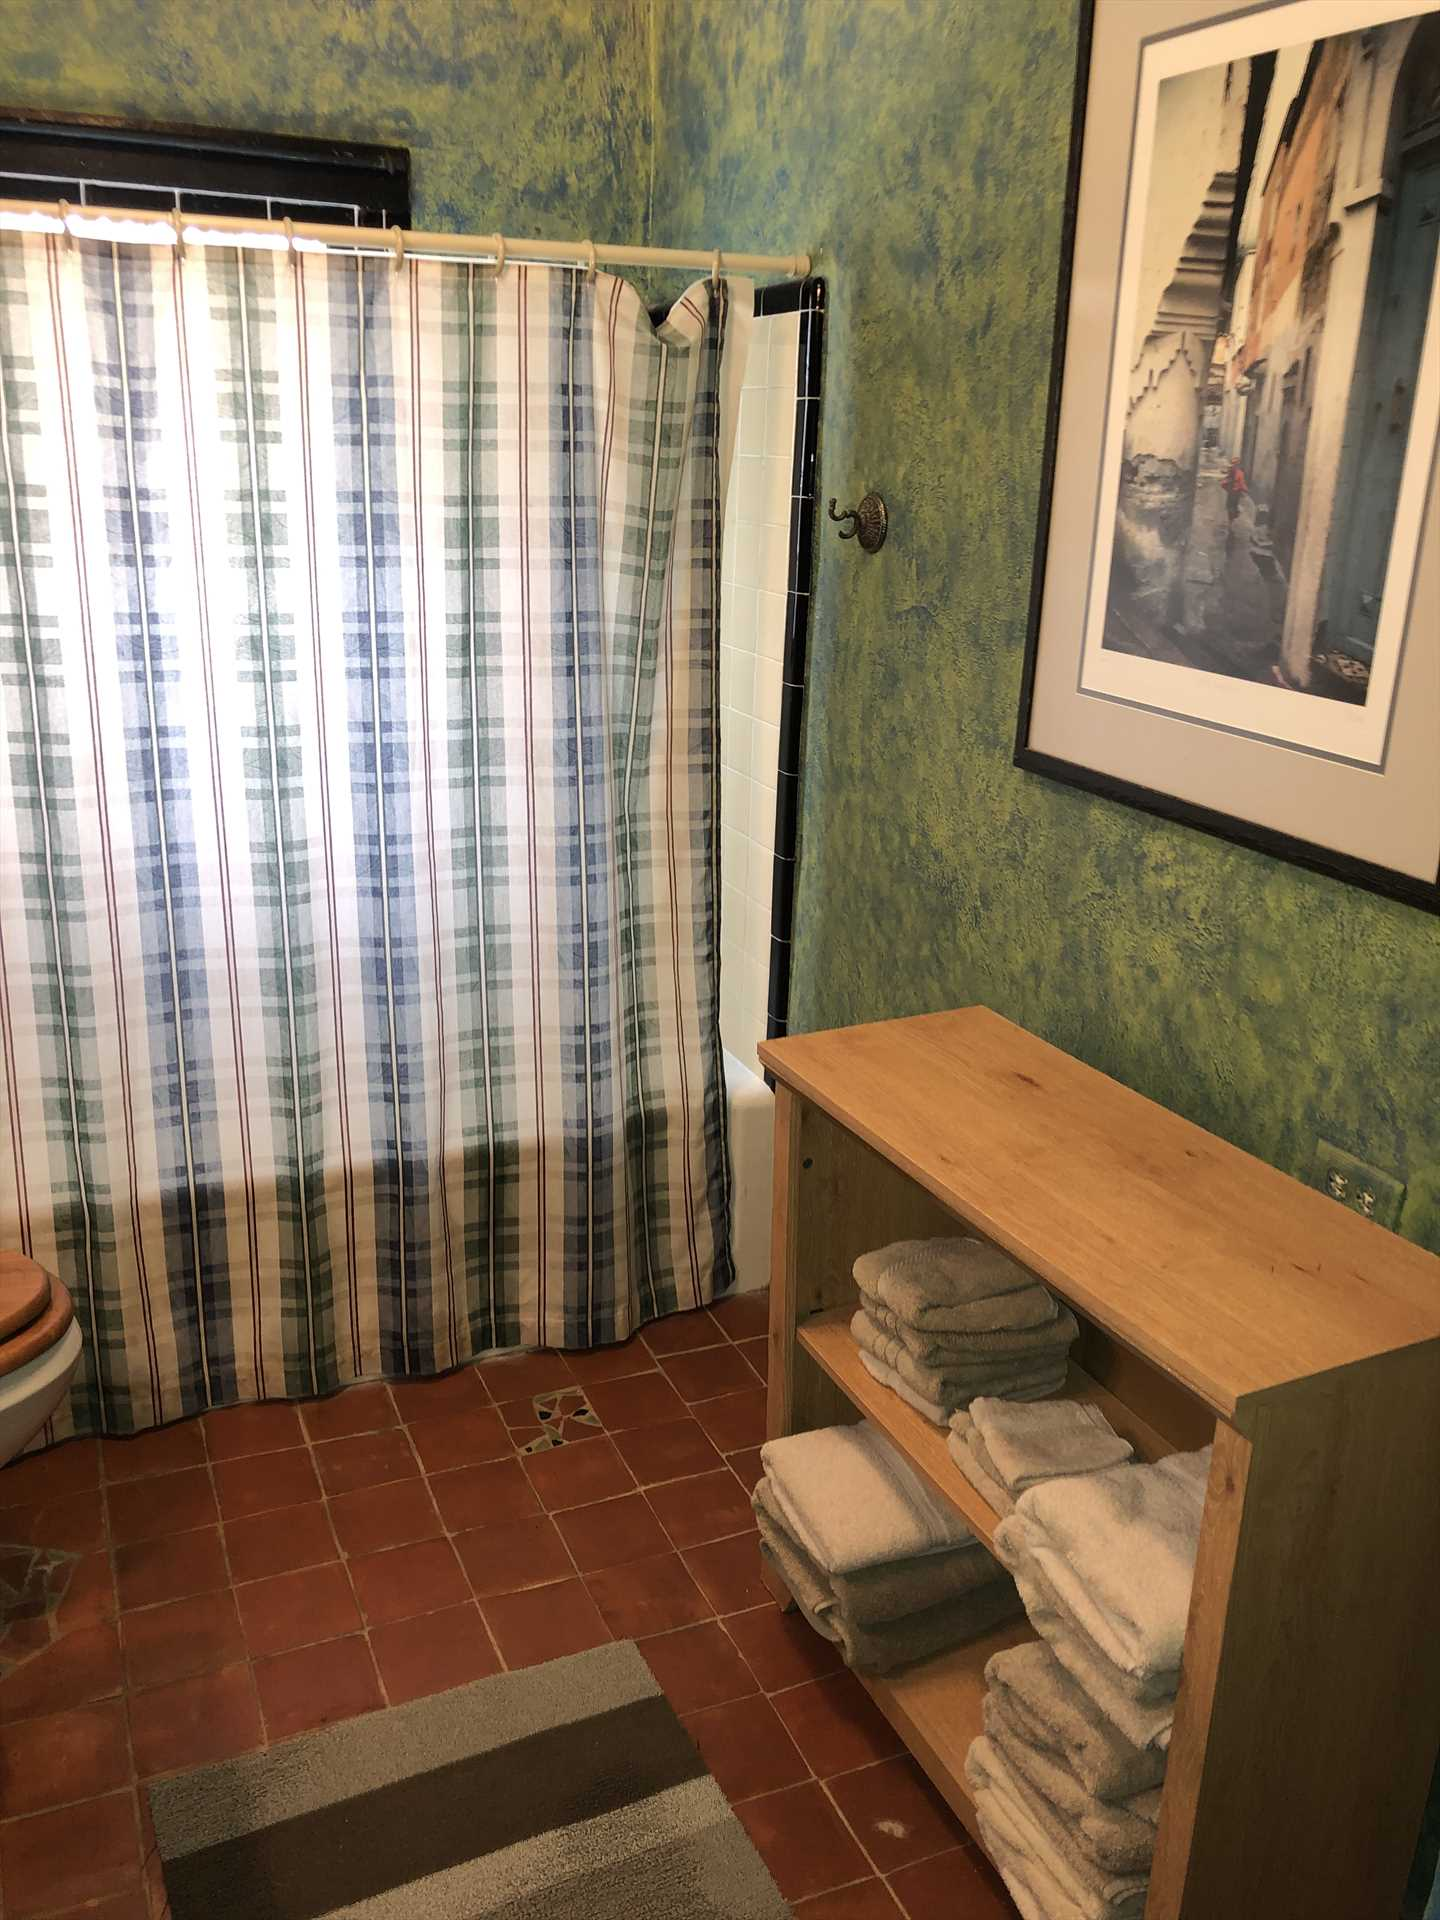 There's a shower and tub combo in the second bathroom, offering an option for those who'd like a good, relaxing soak.